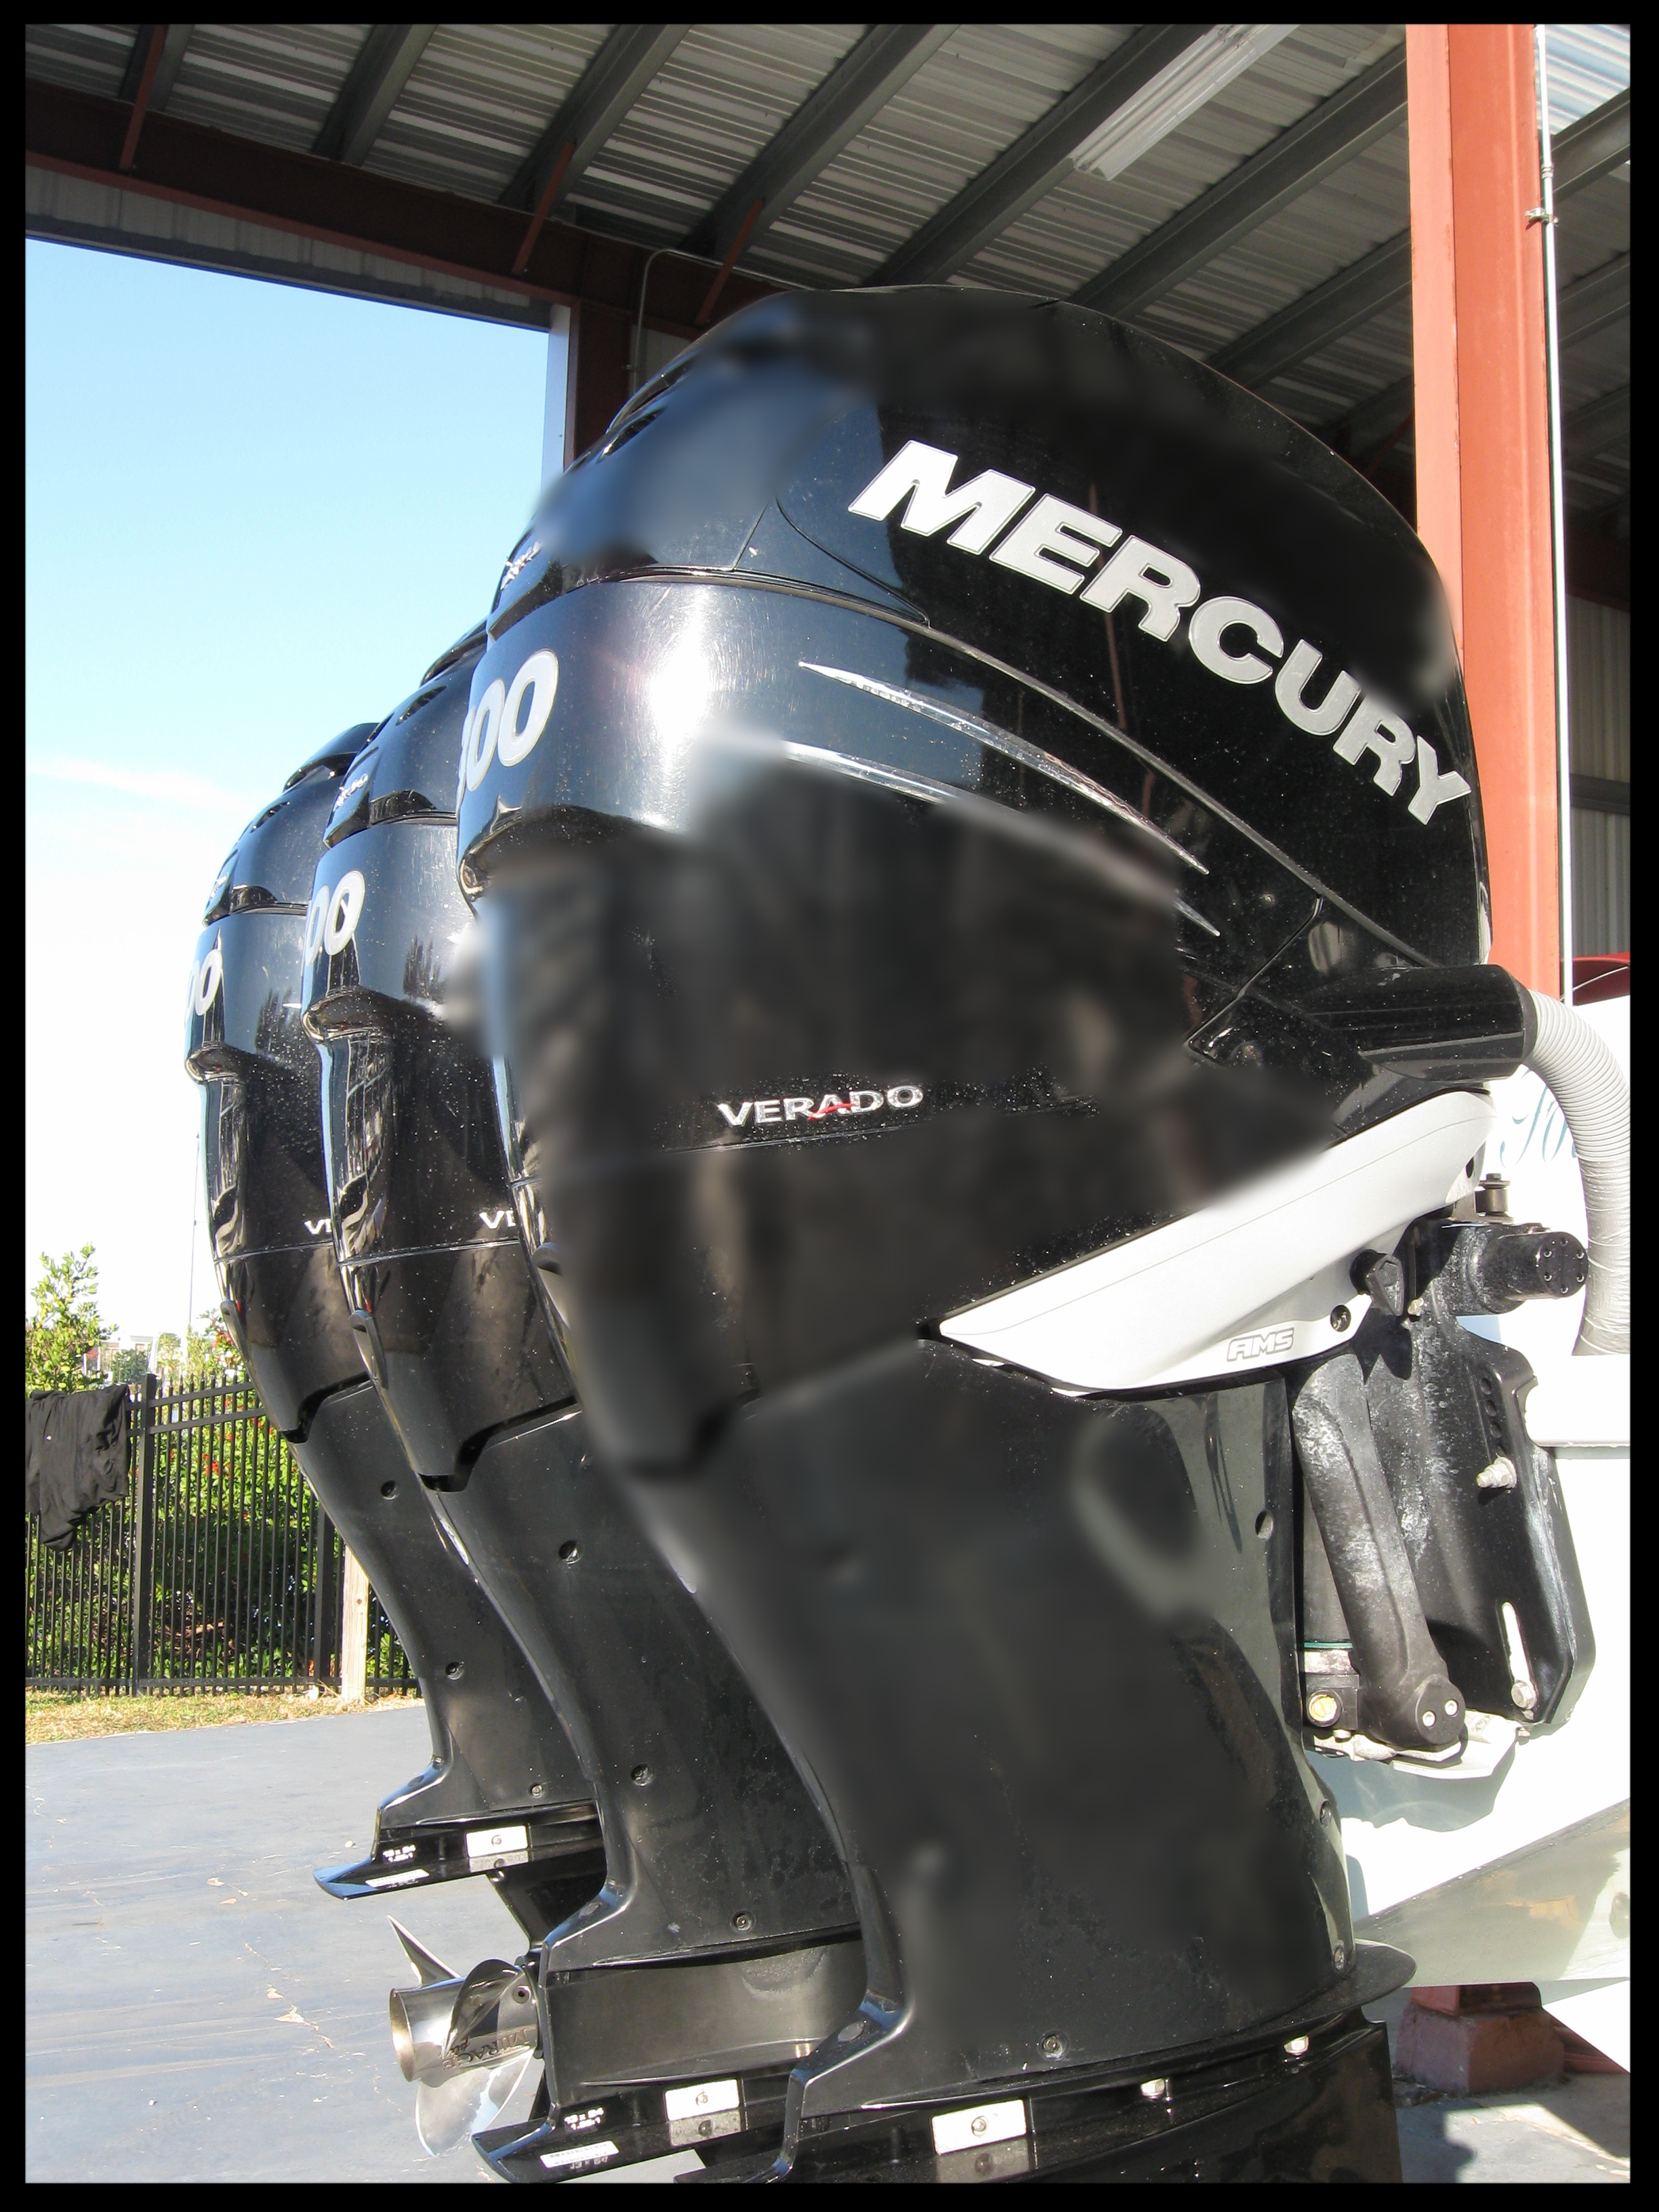 Parts & Service - 20 plus years experienceCertified master techniciansFactory authorized MerCruiser/Volvo technicians, also serving all other major brandsUse of all OEM partsAuthorized Mercury - MerCruiser Service Center on the water.Intercoastal Waterway at Indian Rocks - Green marker #37